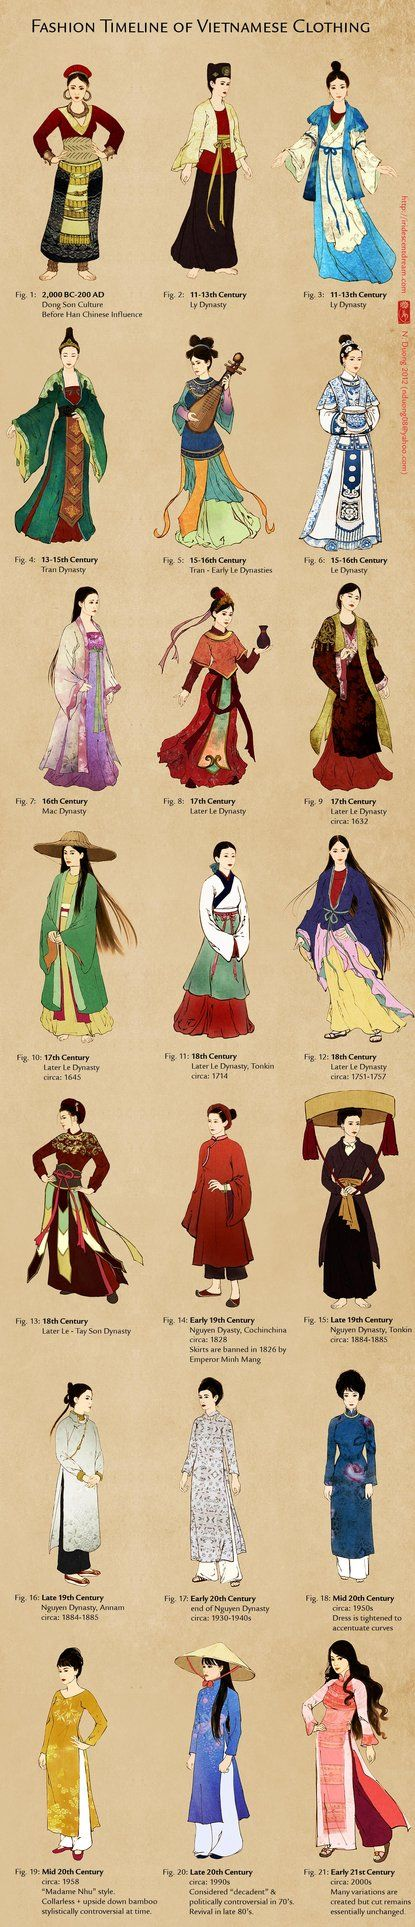 Evolution of Vietnamese Clothing (and Ao Dai) by lilsuika found at http://lilsuika.deviantart.com/art/Evolution-of-Vietnamese-Clothing-and-Ao-Dai-287945386